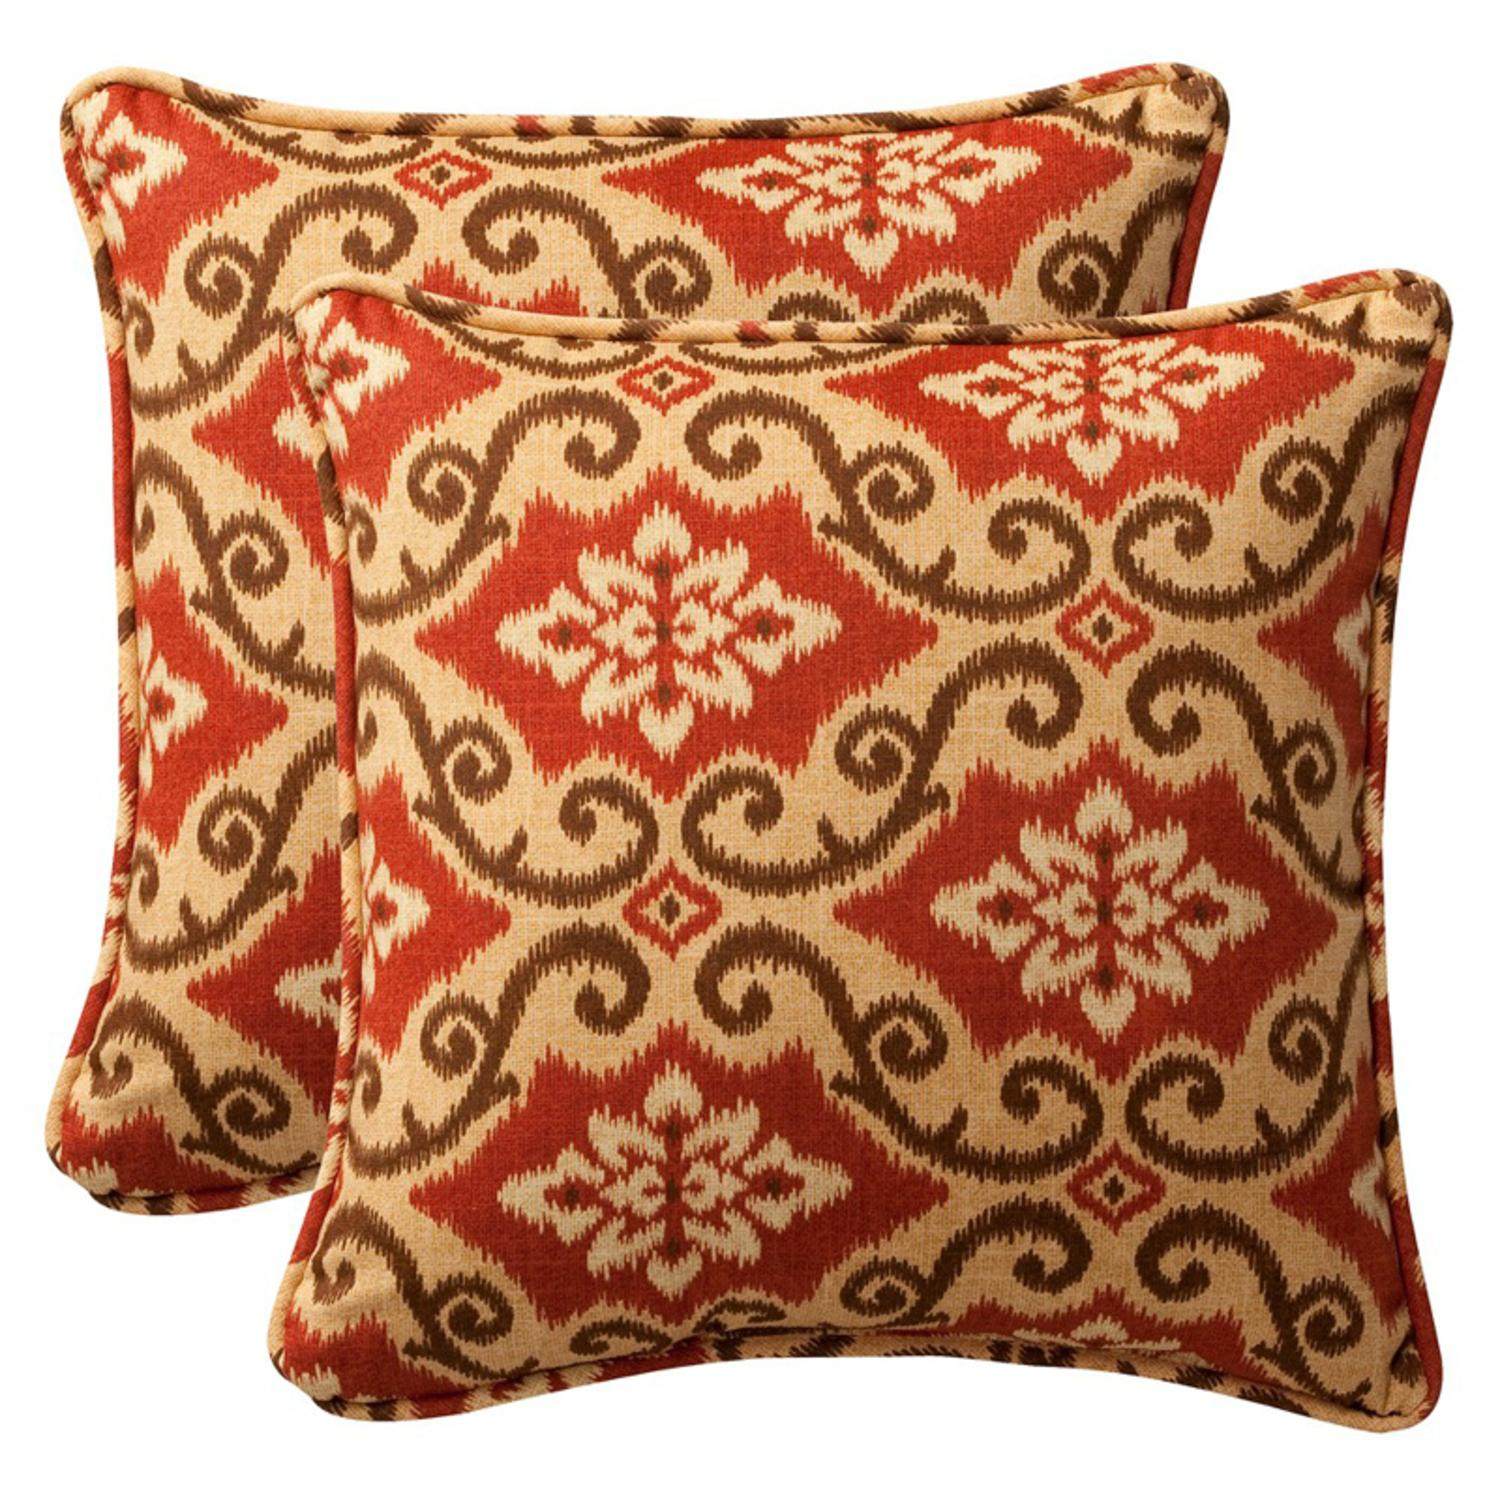 "Pack of 2 Outdoor Patio Furniture SquareThrow Pillows 18.5"" - Vintage Tuscan"